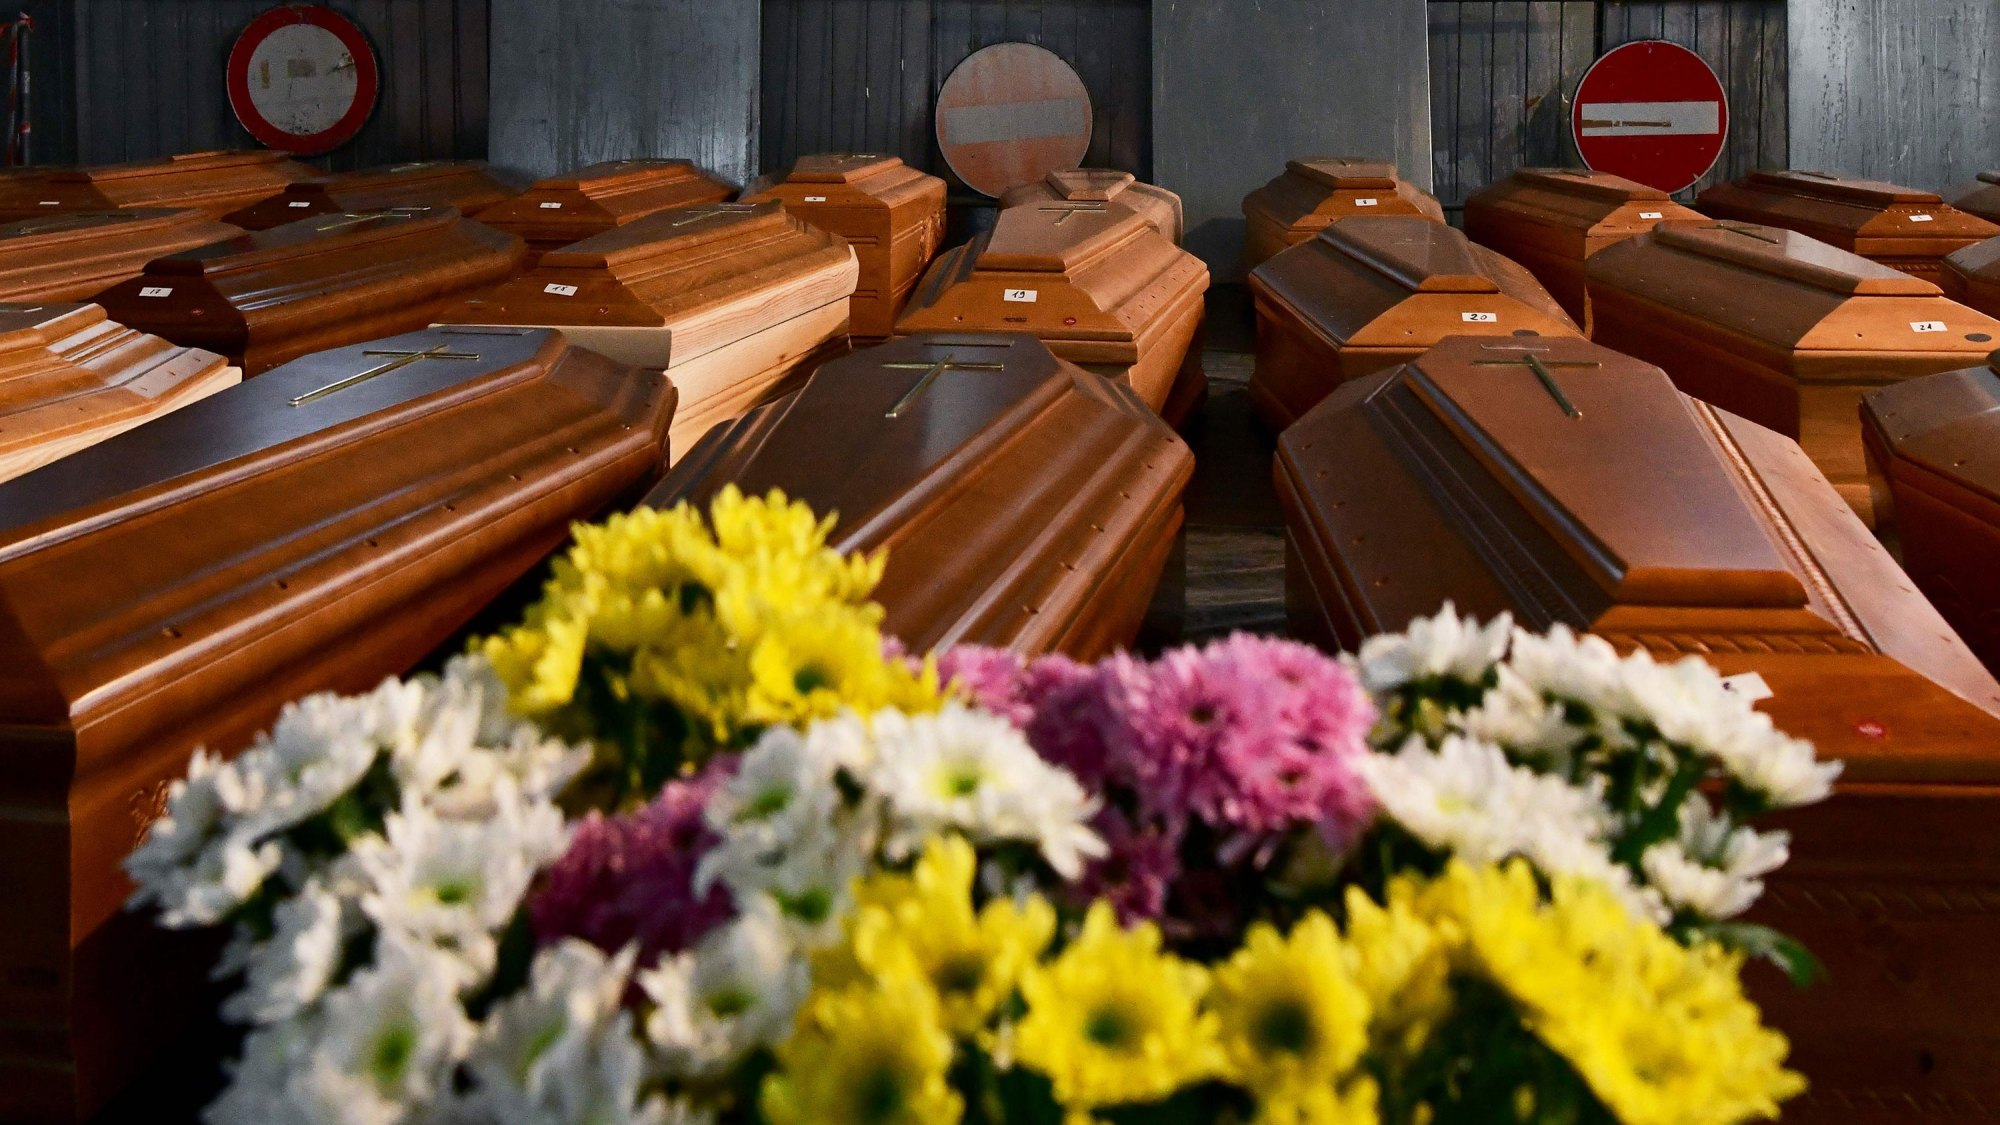 A general view shows some of 35 coffins of deceased people stored in a warehouse in Ponte San Pietro, near Bergamo, Lombardy, on March 26, 2020 prior to be transported in another region to be cremated, during the country's lockdown following the COVID-19 new coronavirus pandemic. (Piero Cruciatti / AFP via Getty Images)